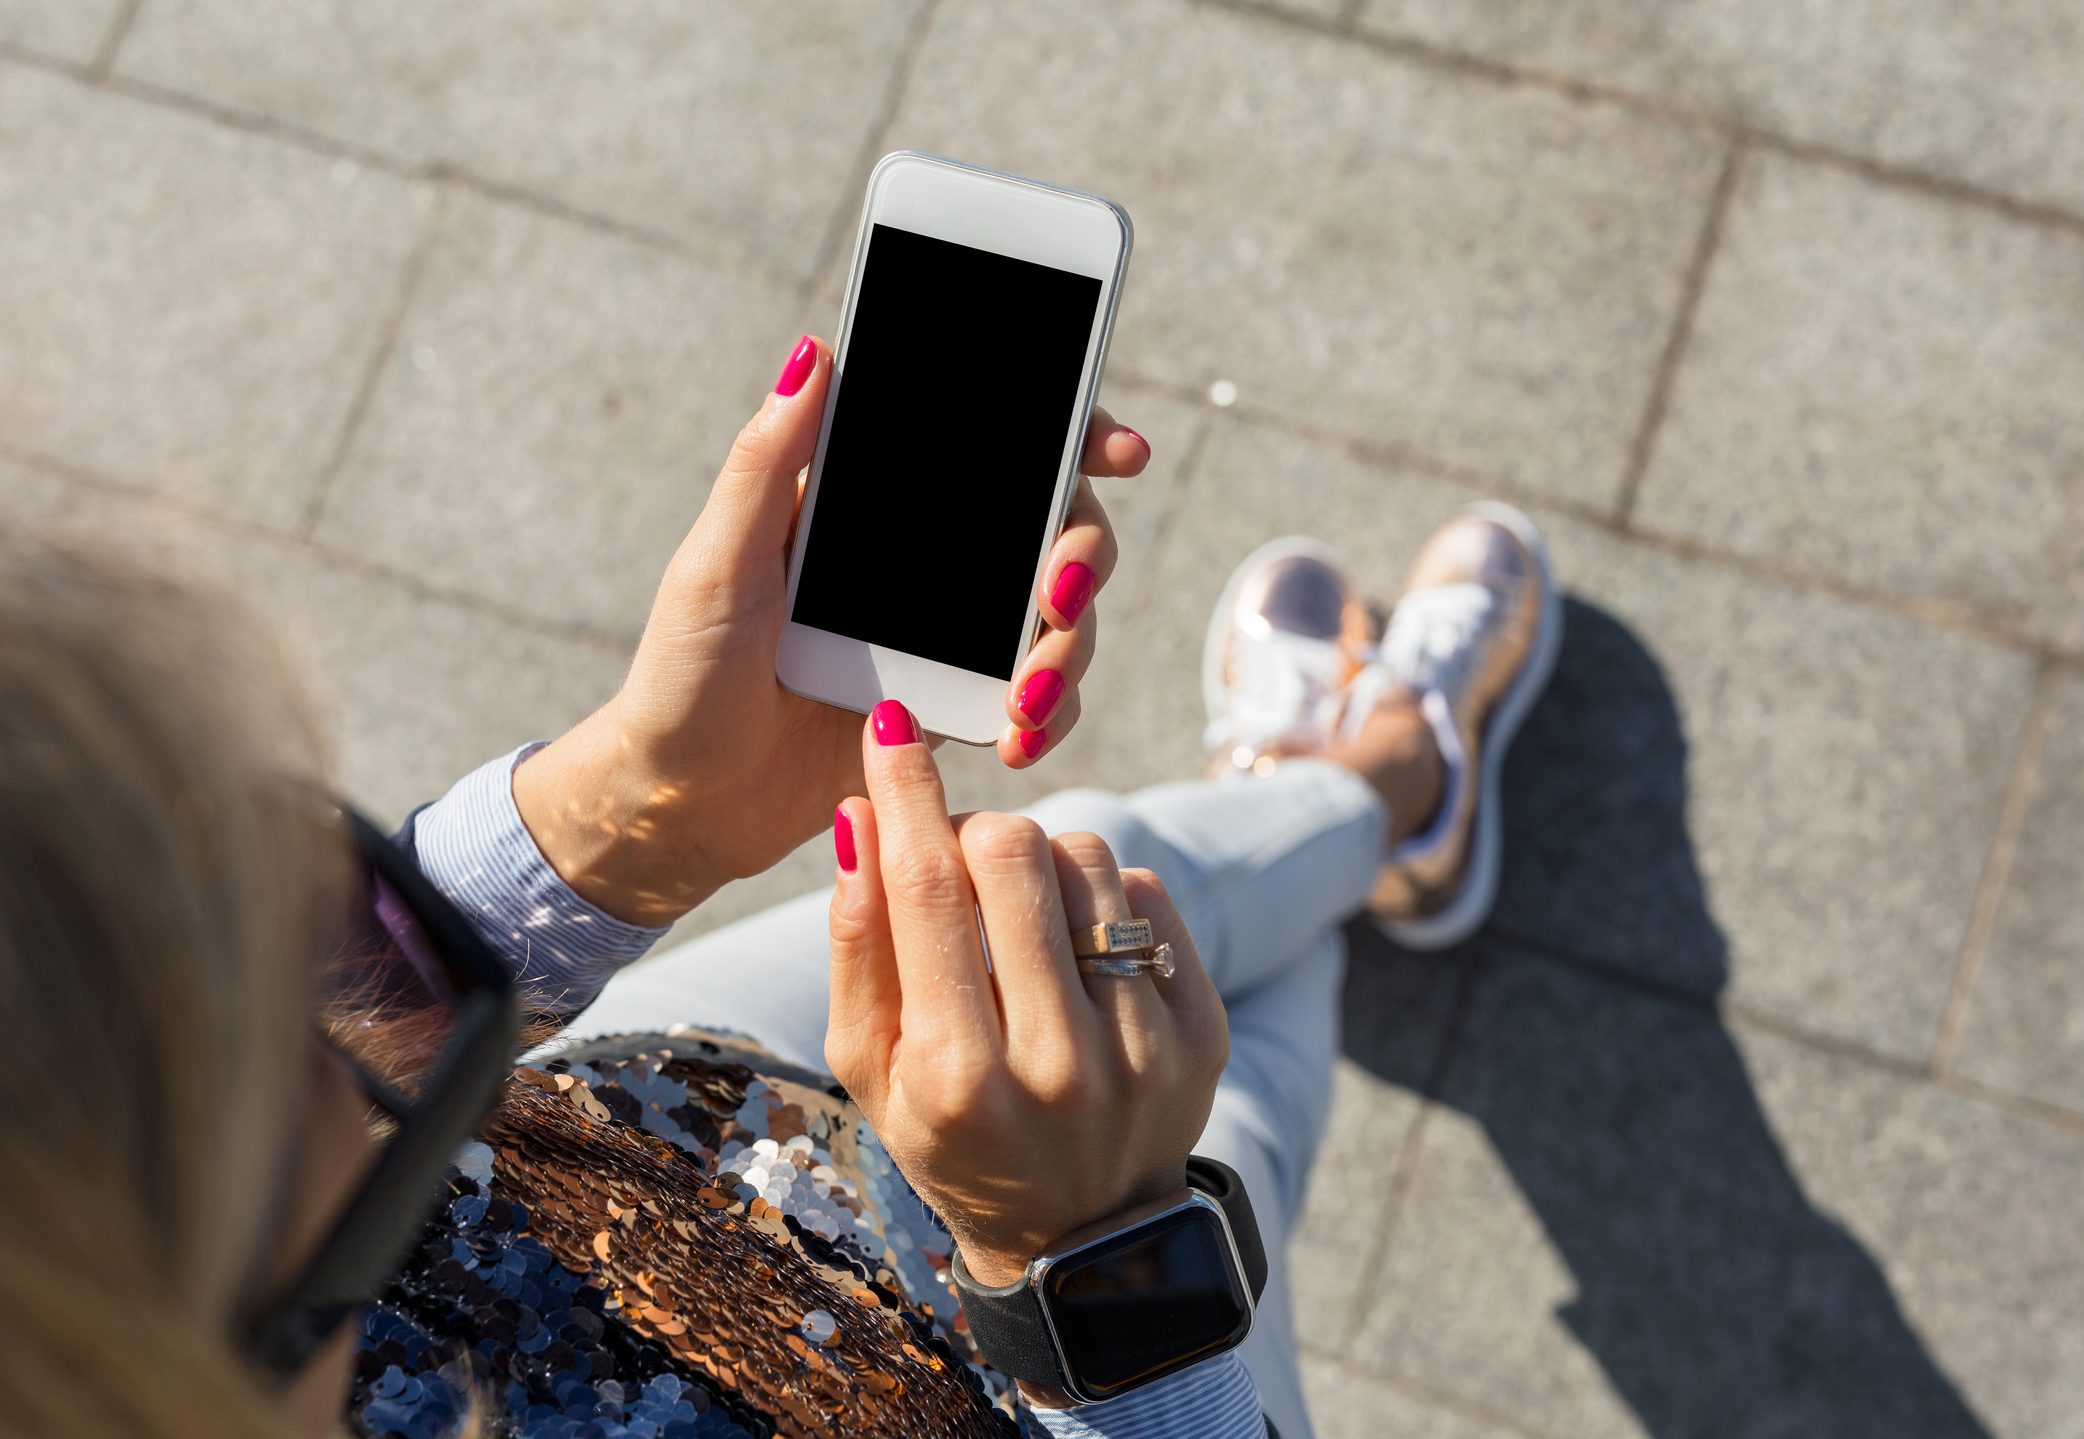 Five things to think about when insuring your device -